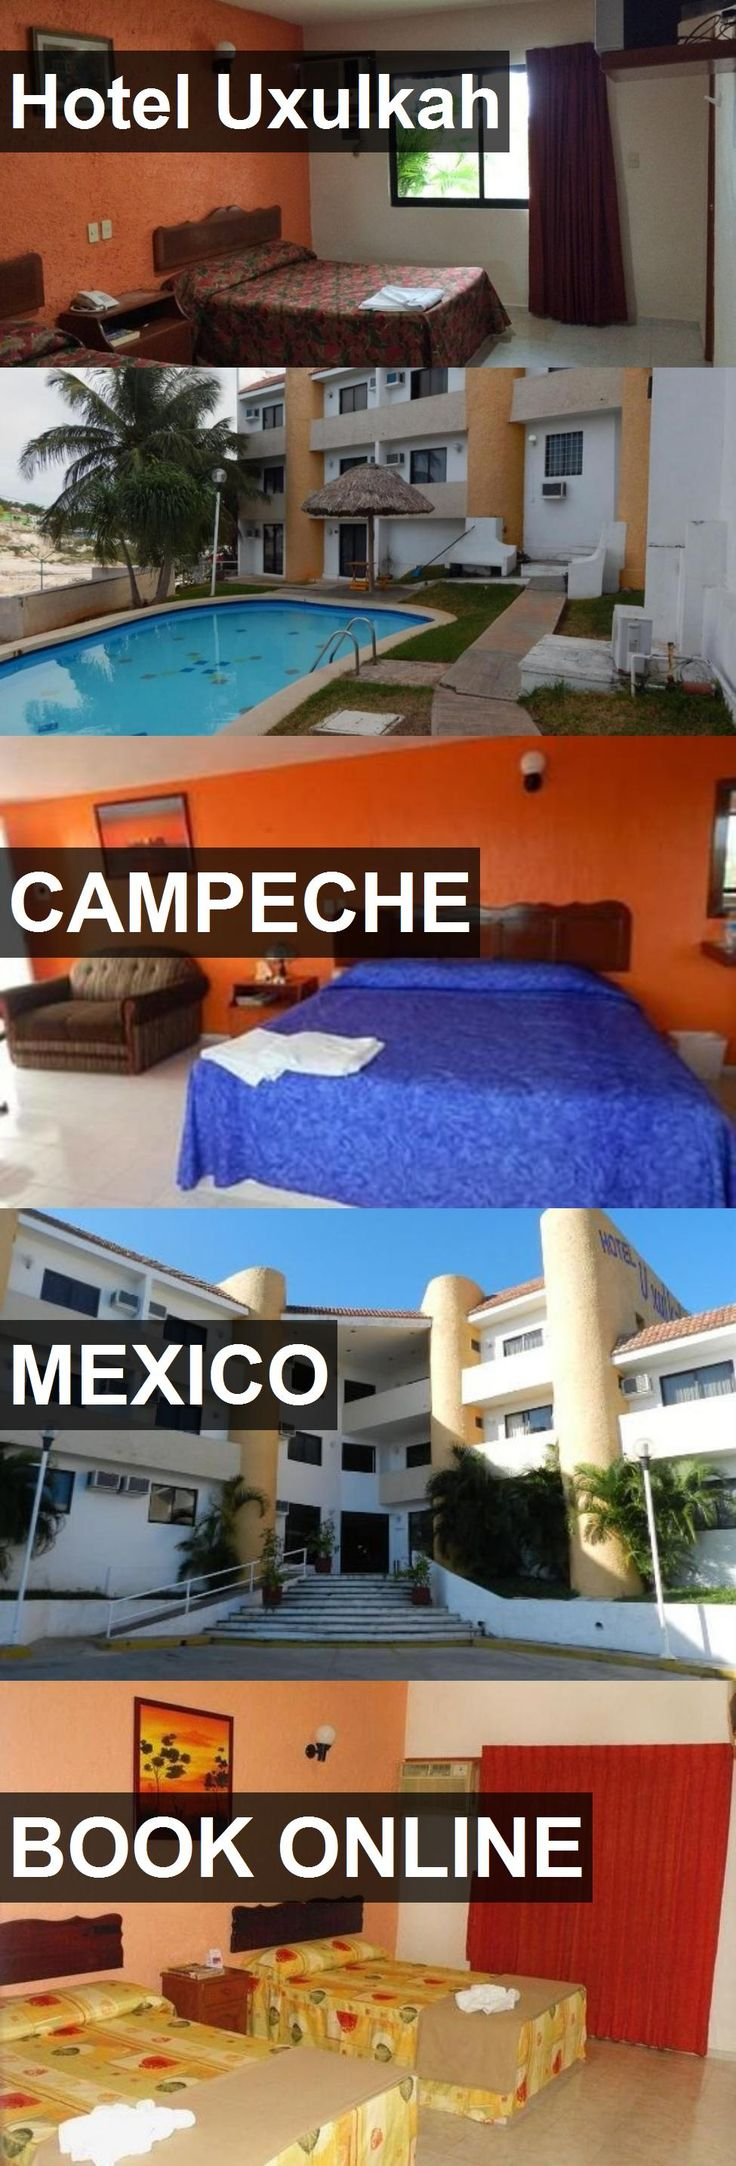 Hotel Uxulkah in Campeche, Mexico. For more information, photos, reviews and best prices please follow the link. #Mexico #Campeche #travel #vacation #hotel